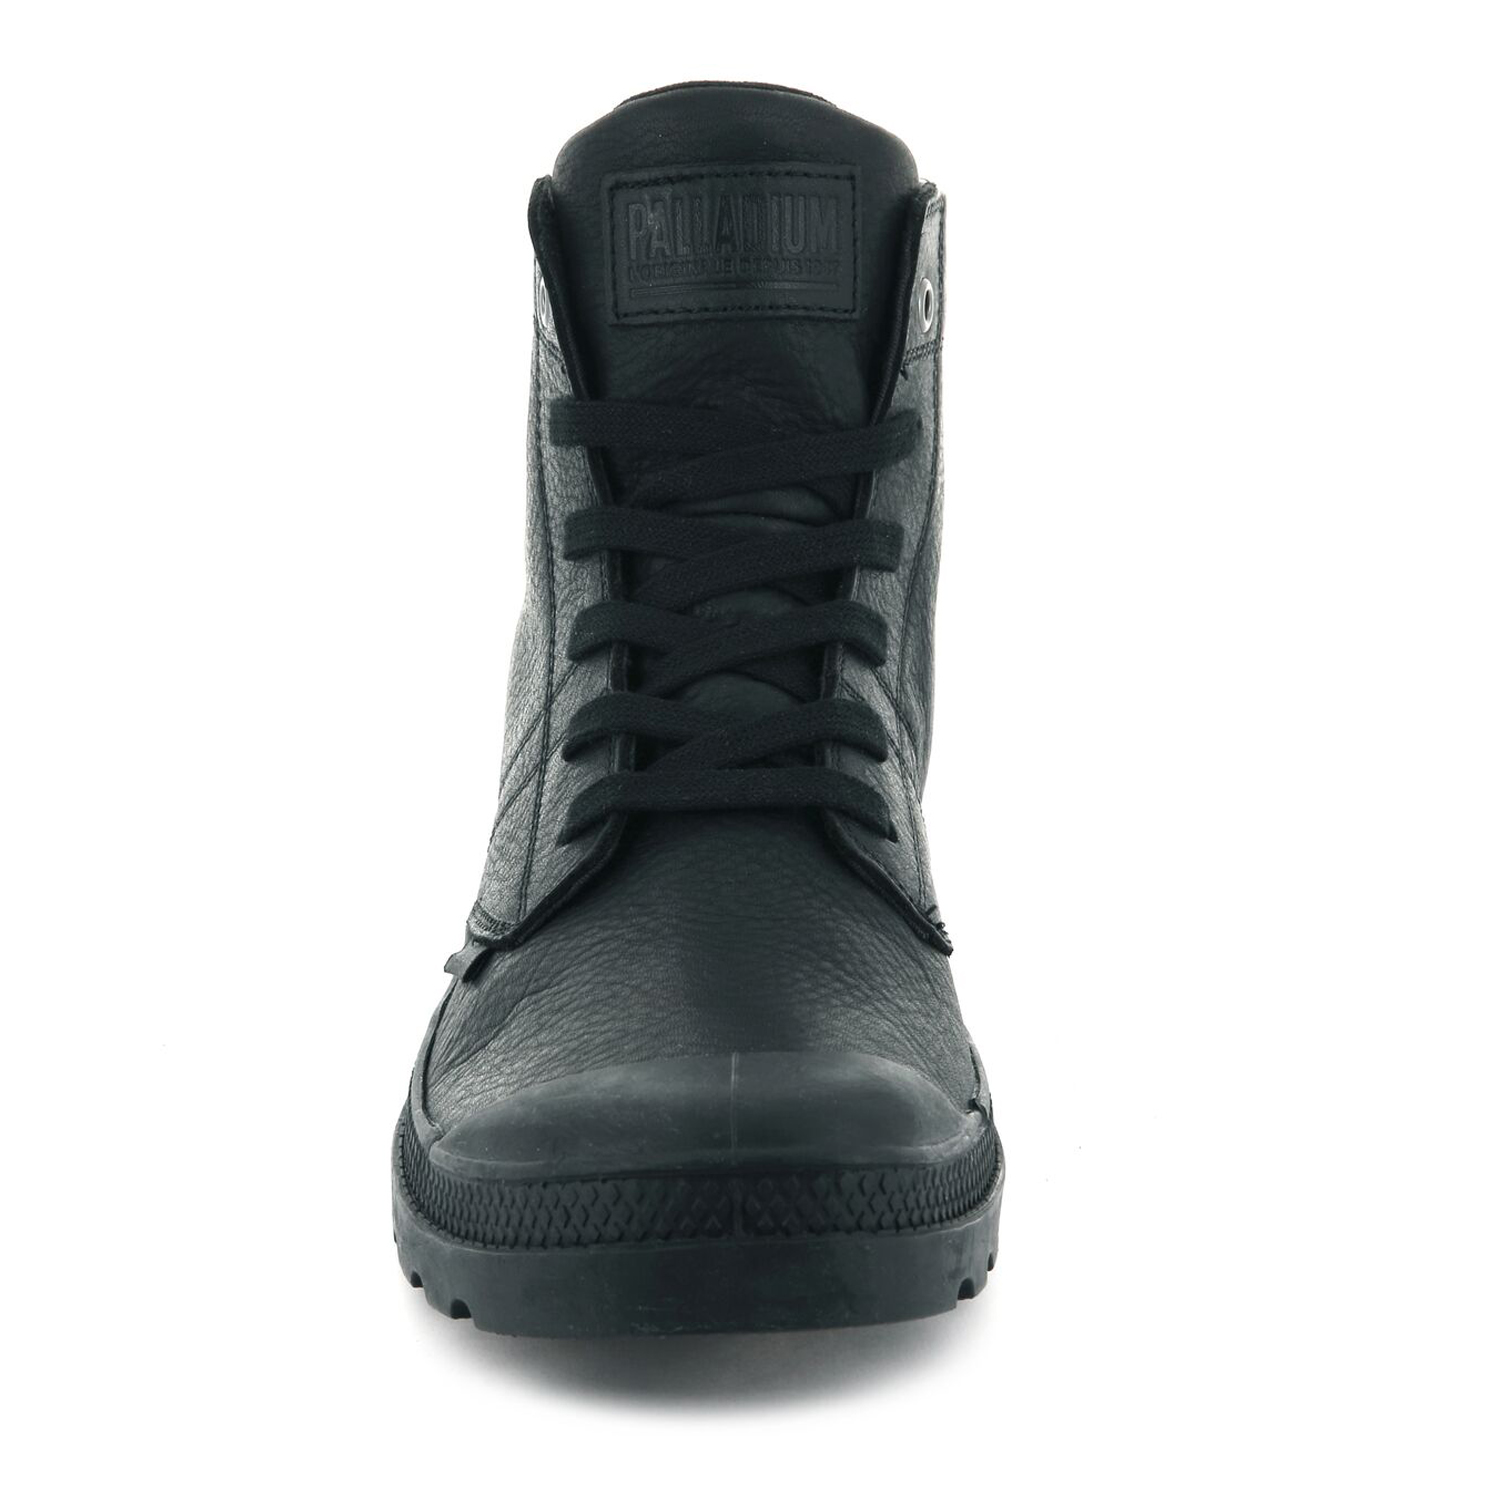 Palladium-Mens-Pallabrousse-Leather-Lace-Up-Boots-Walking-Chukka-Ankle-Shoes thumbnail 5